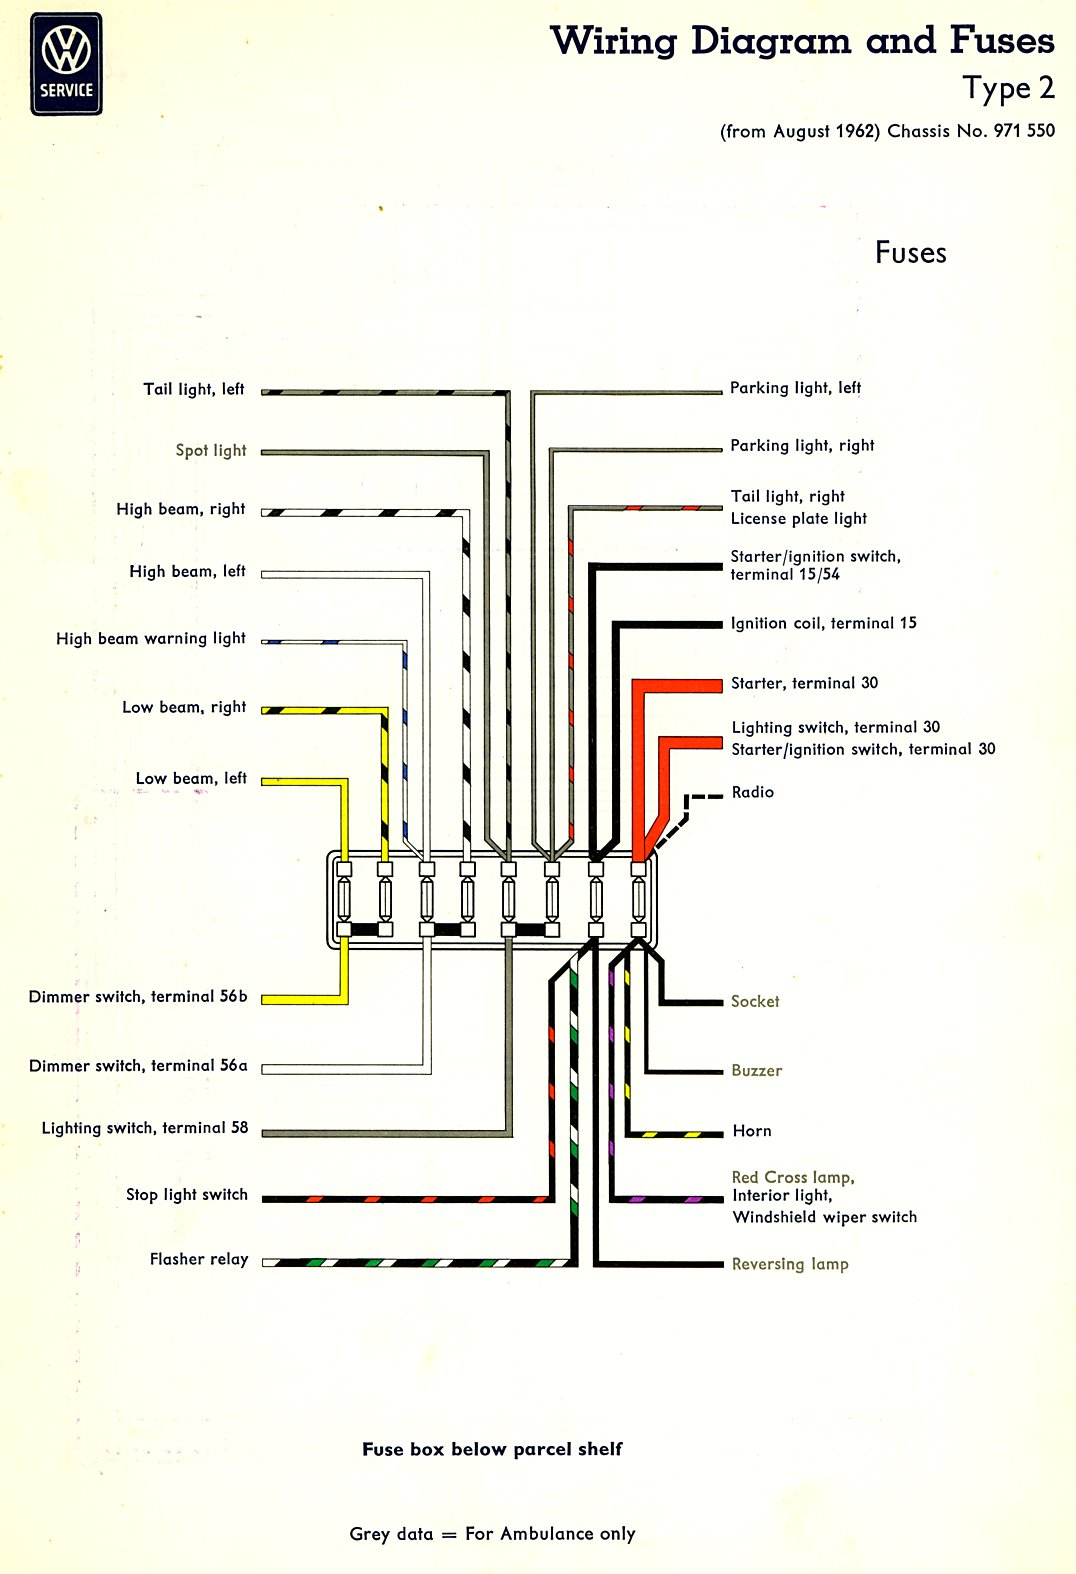 Type 2 Wiring Diagrams 1968 Nova Diagram Free Picture Schematic